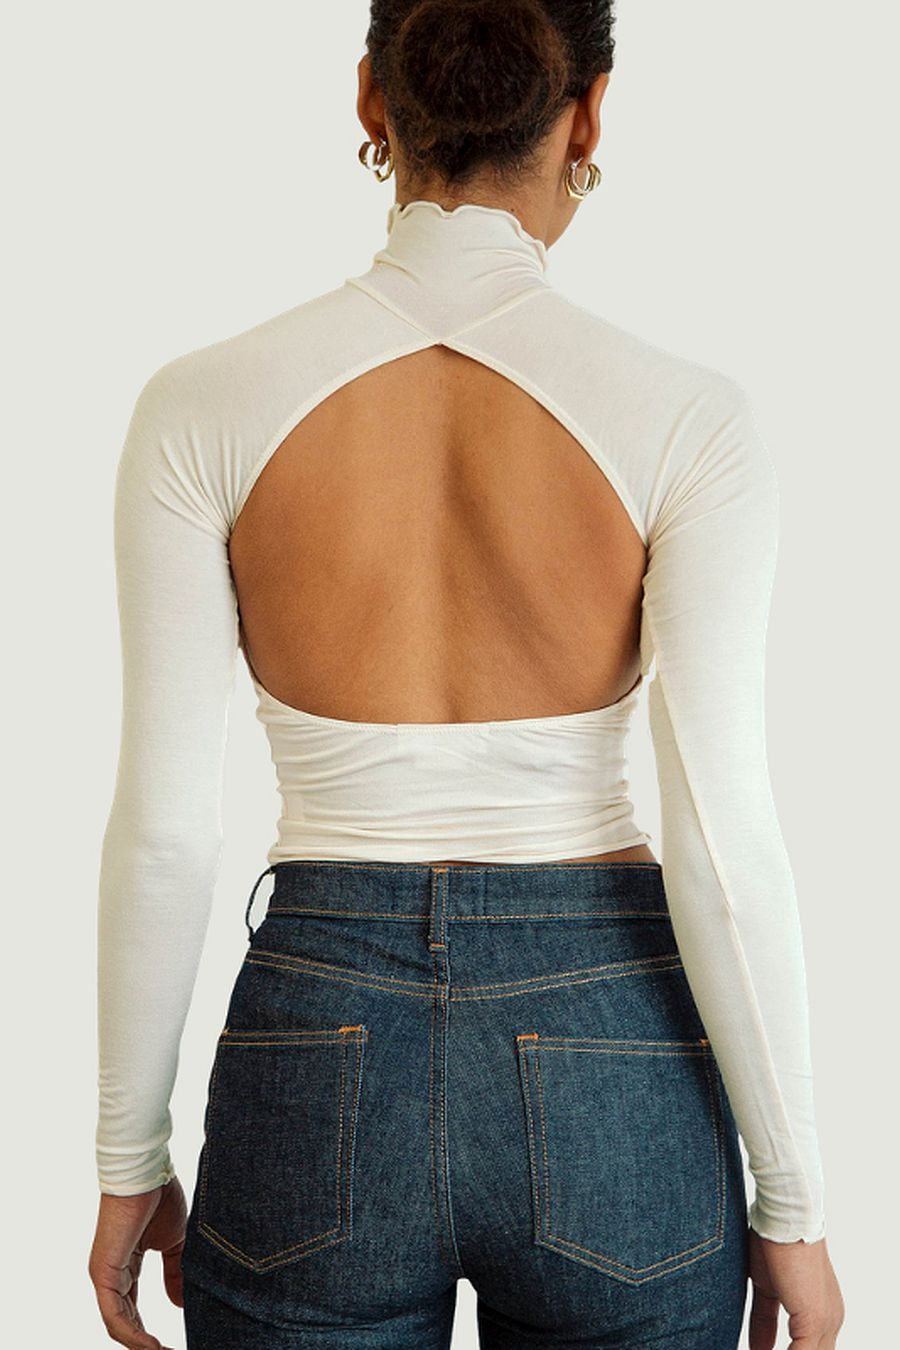 The Line by K Margaux Turtleneck - Cream